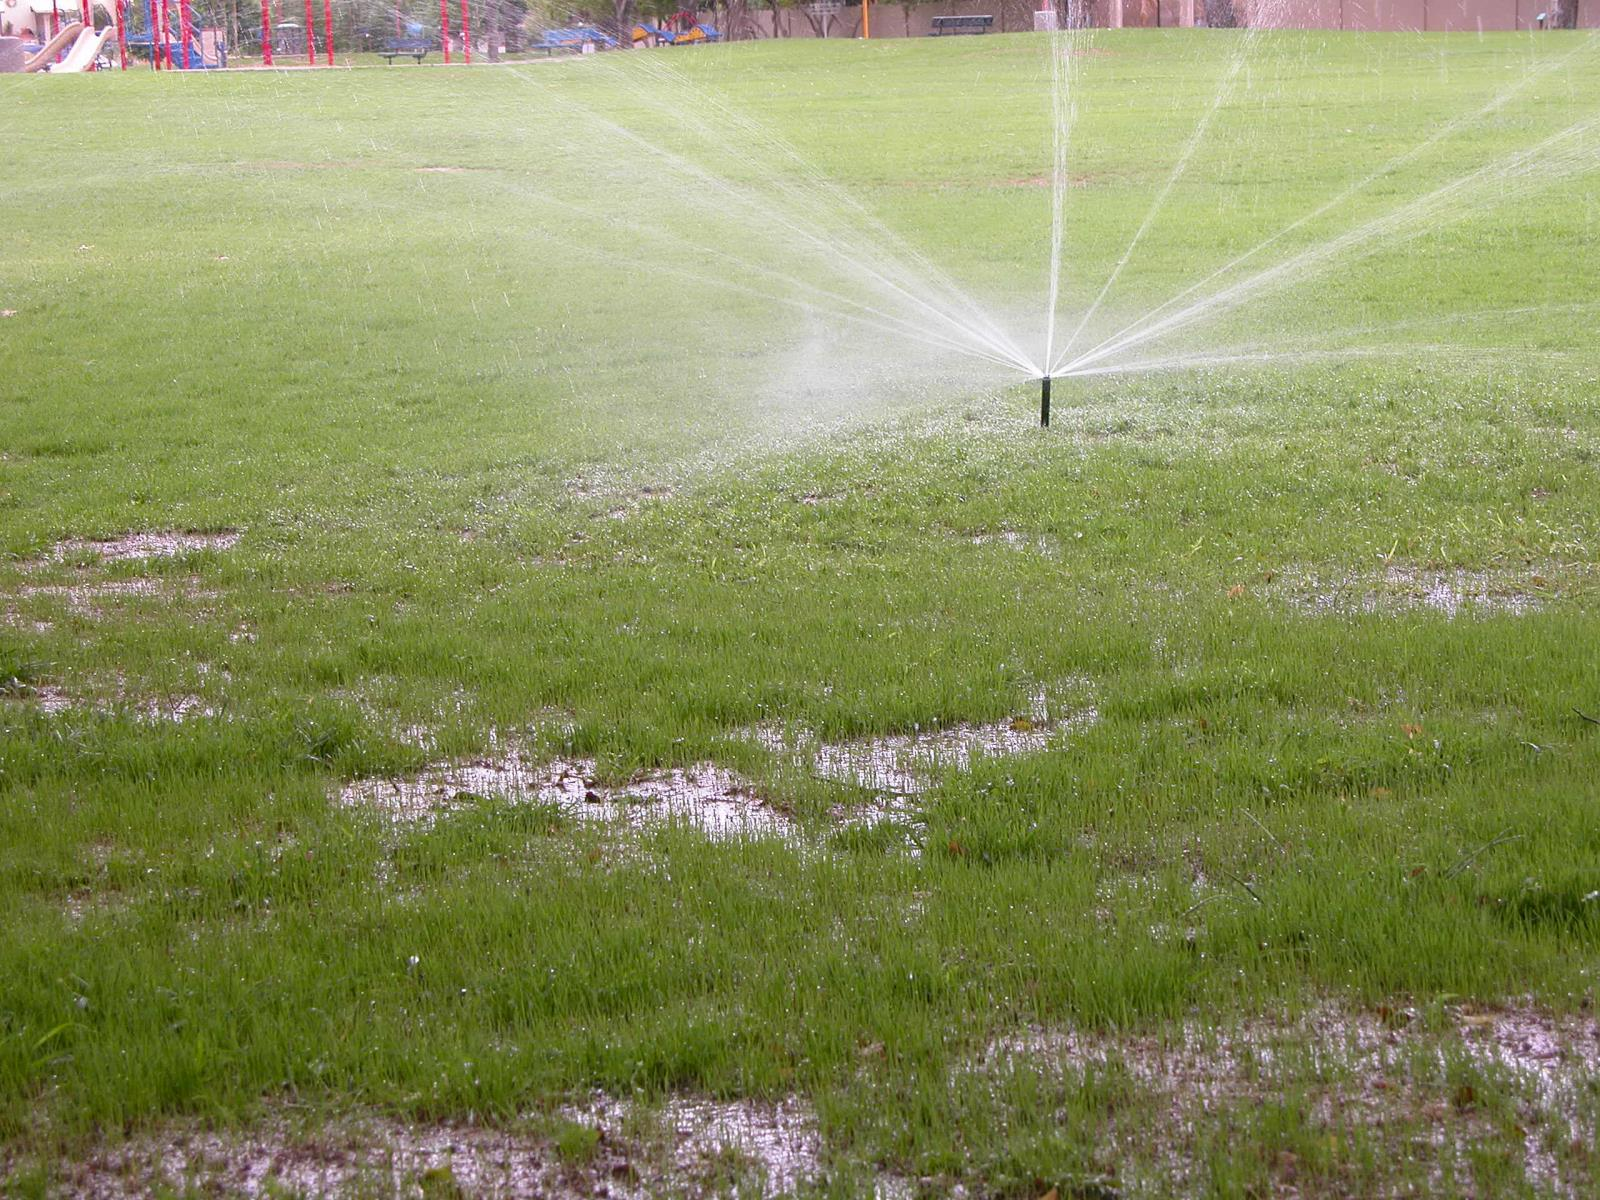 sprinklers for overseeding